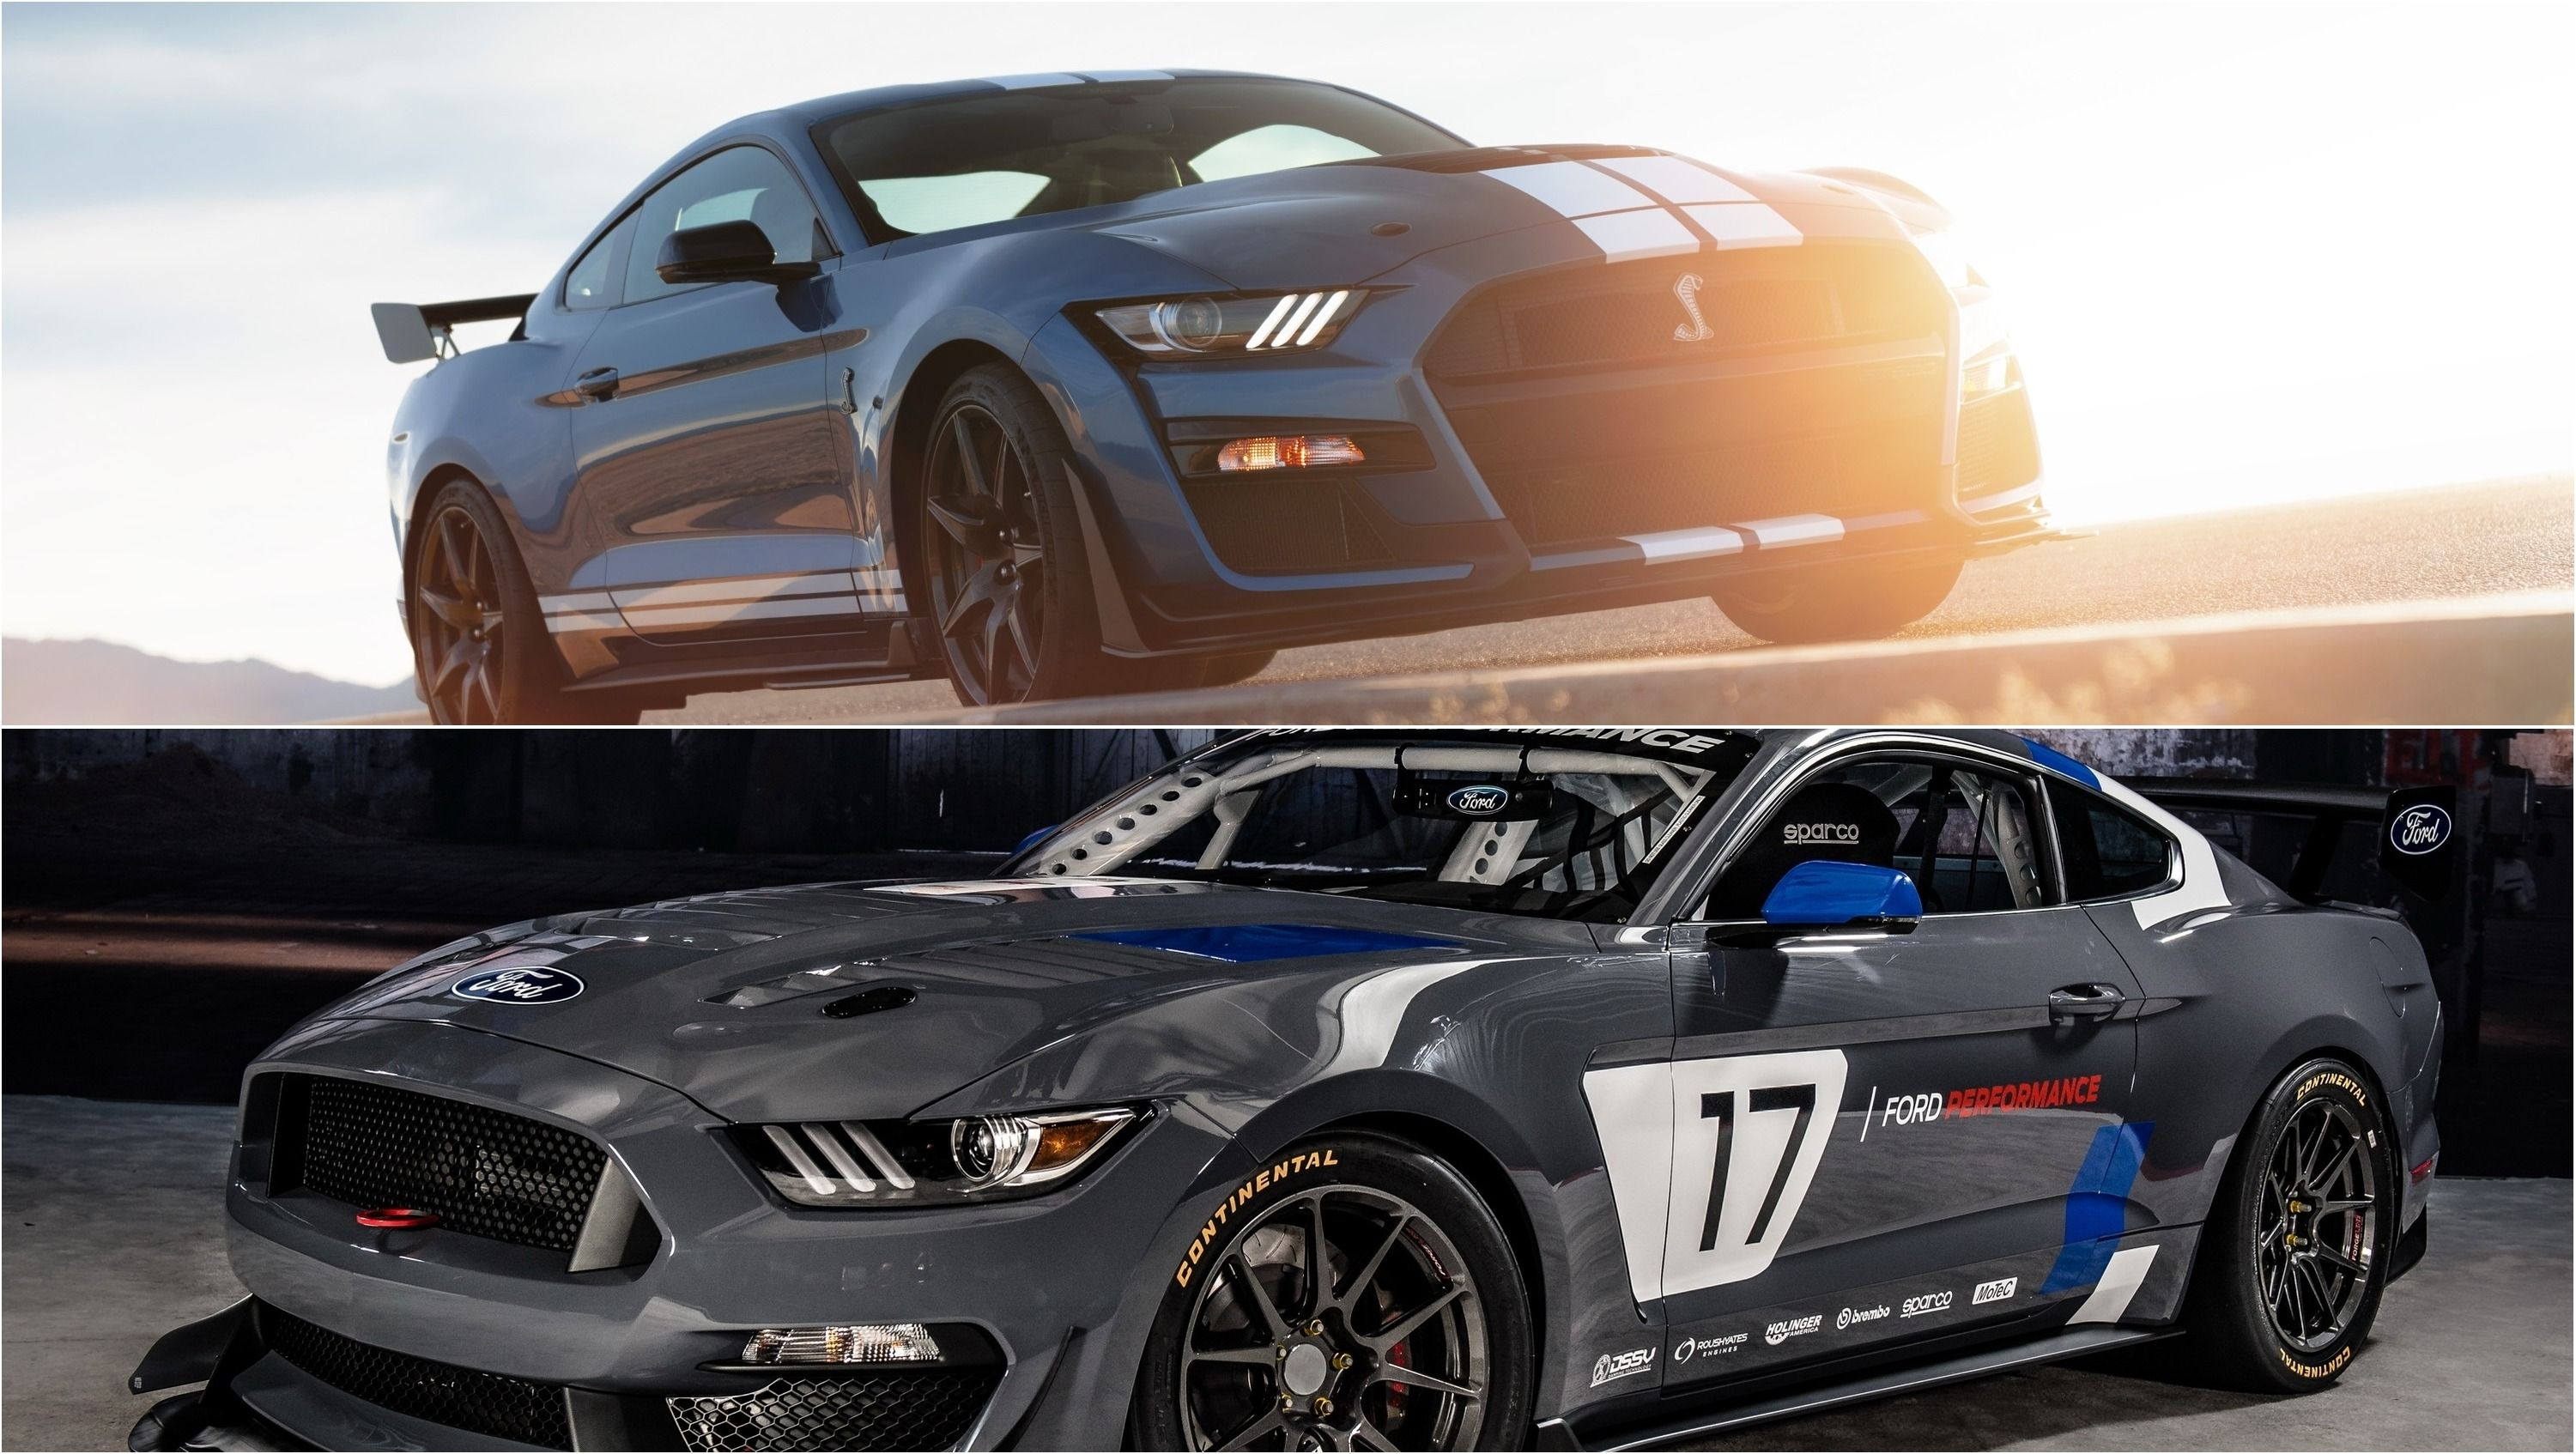 Quick Comparison 2020 Ford Mustang Shelby Gt500 Vs 2016 Ford Mustang Gt4 Top Speed Ford Mustang Shelby Gt500 Ford Mustang Shelby Mustang Shelby